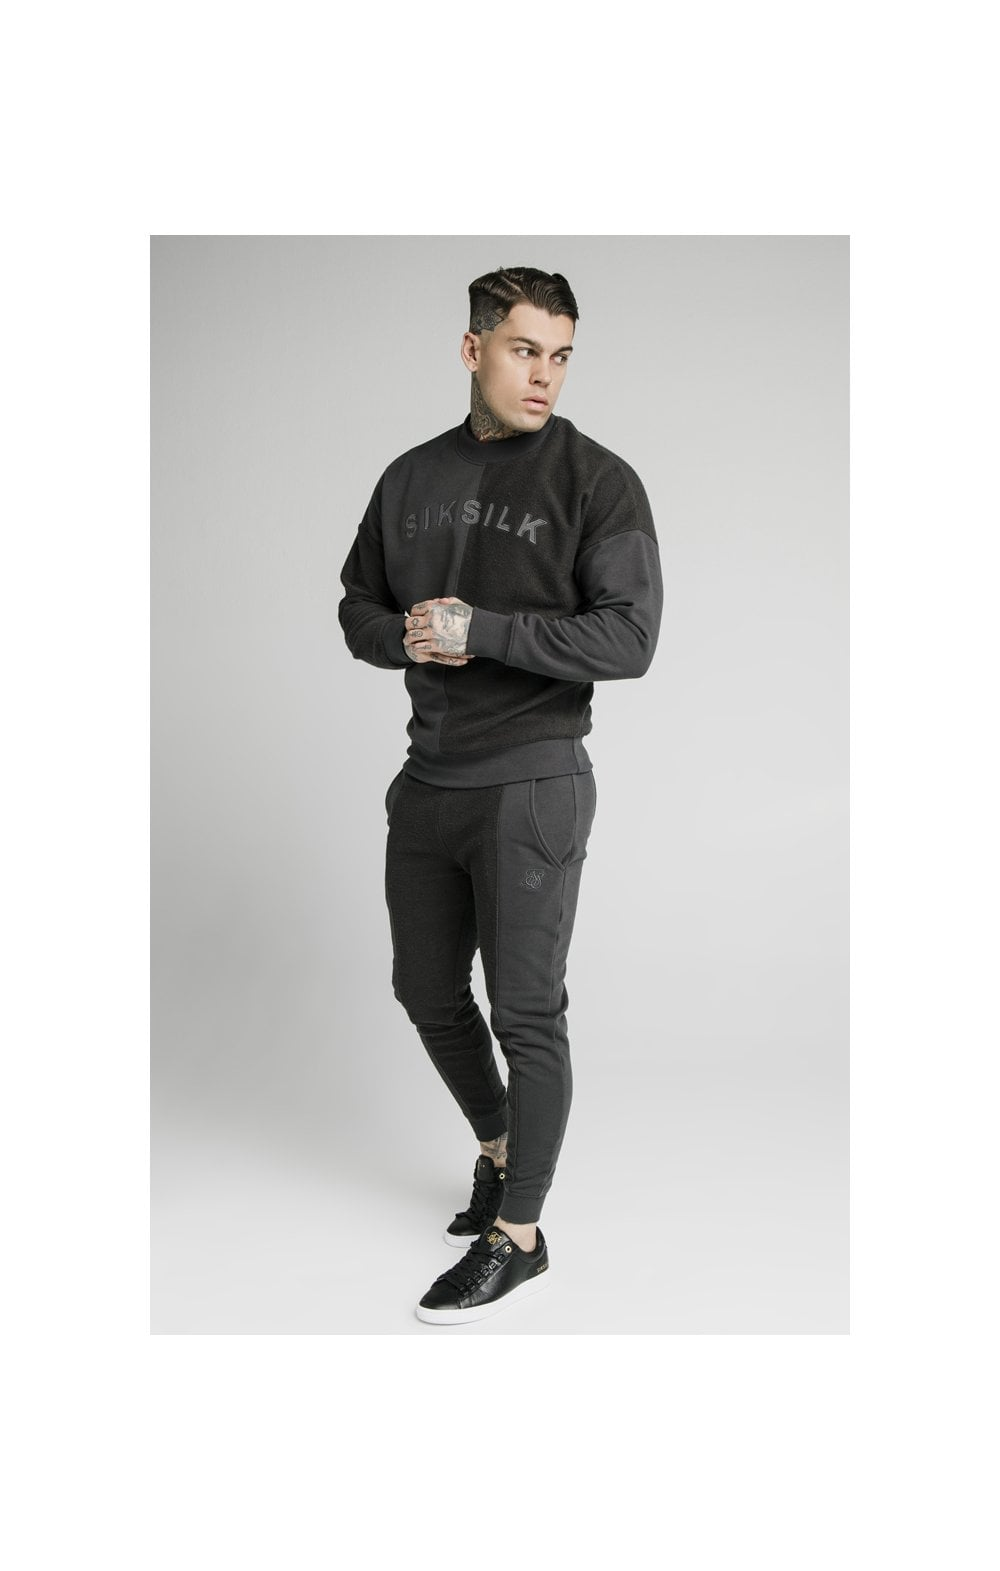 Load image into Gallery viewer, SikSilk Half & Half Crew Sweater – Washed Grey (2)